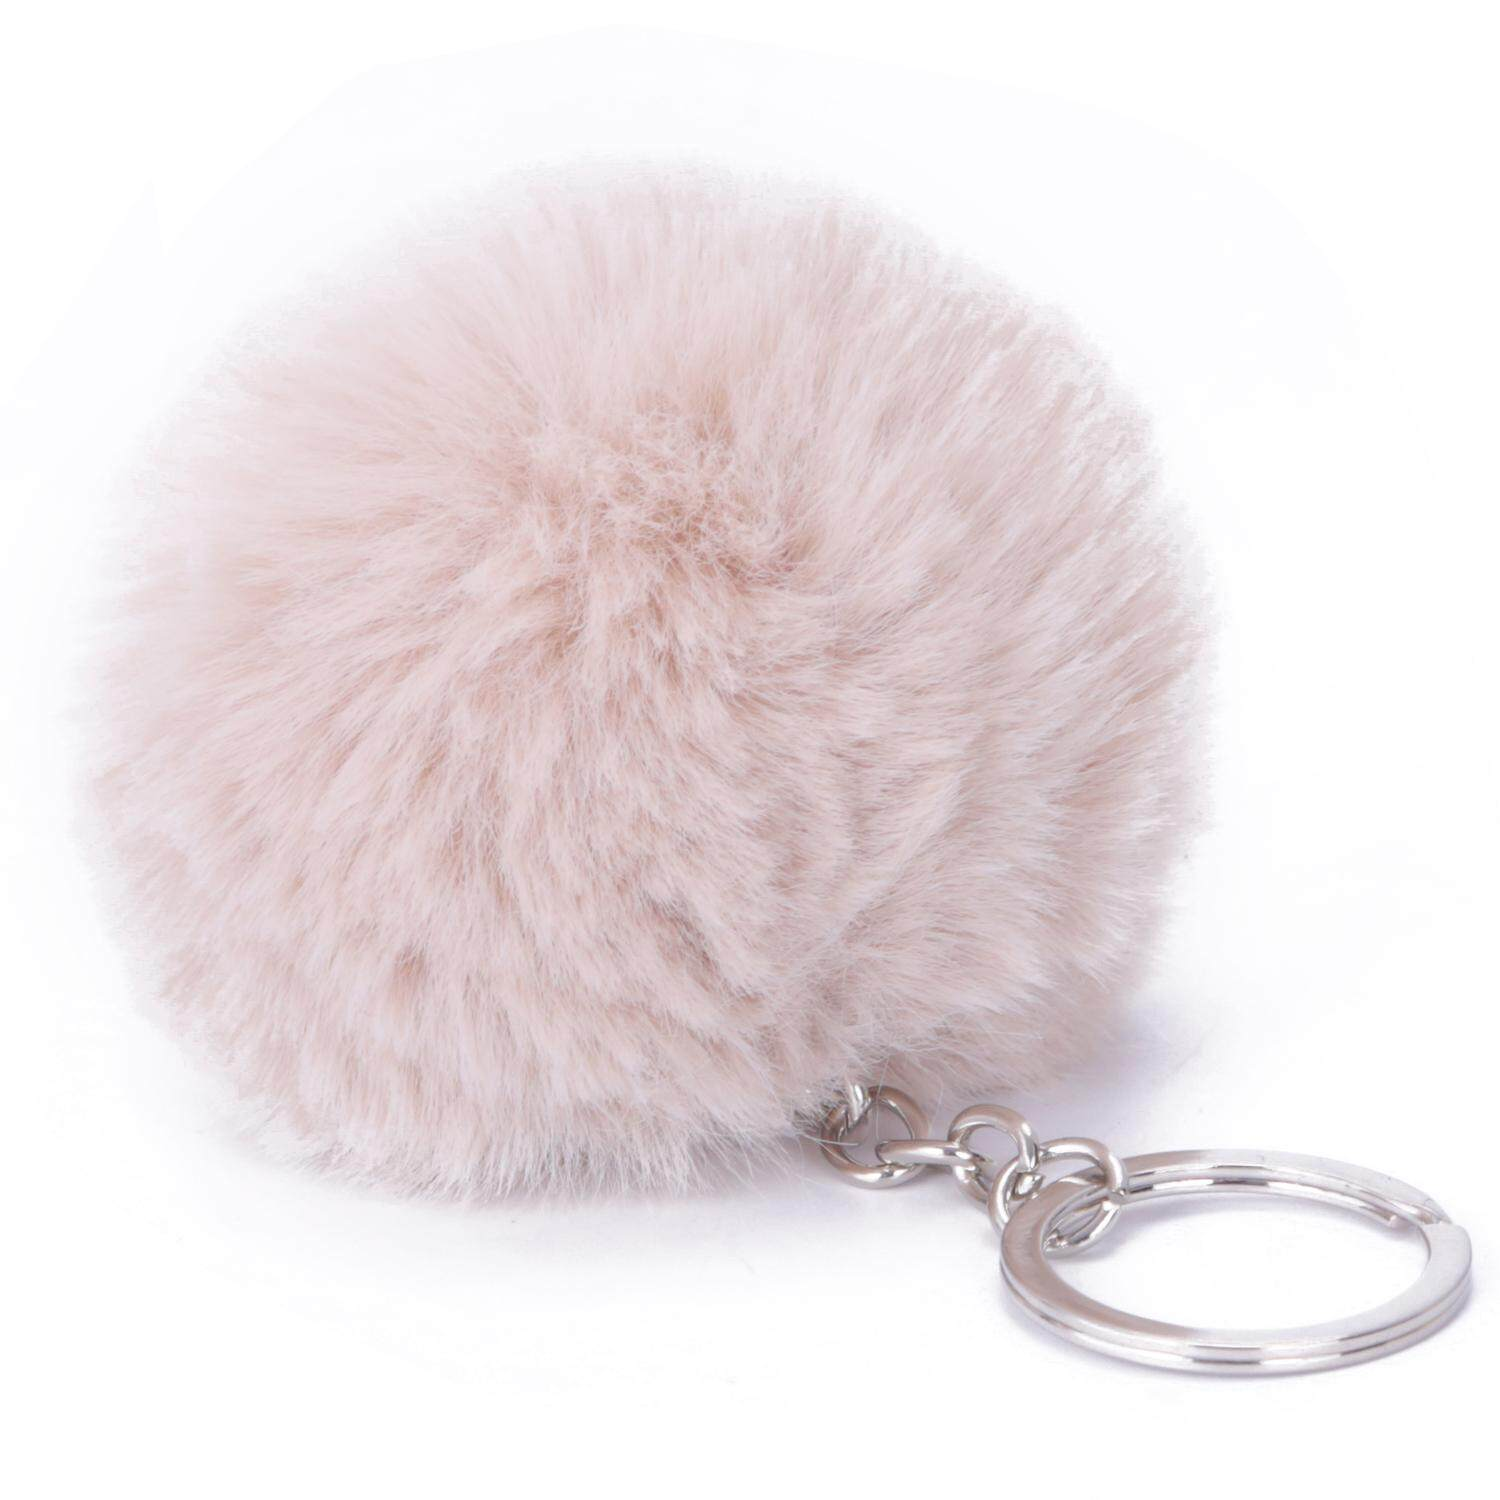 0d40967a540ed9 9141 items found in Key Holders. women artificial fur pompon pendant  keychains girl Bag jewelry pompom DIY accessories free shipping